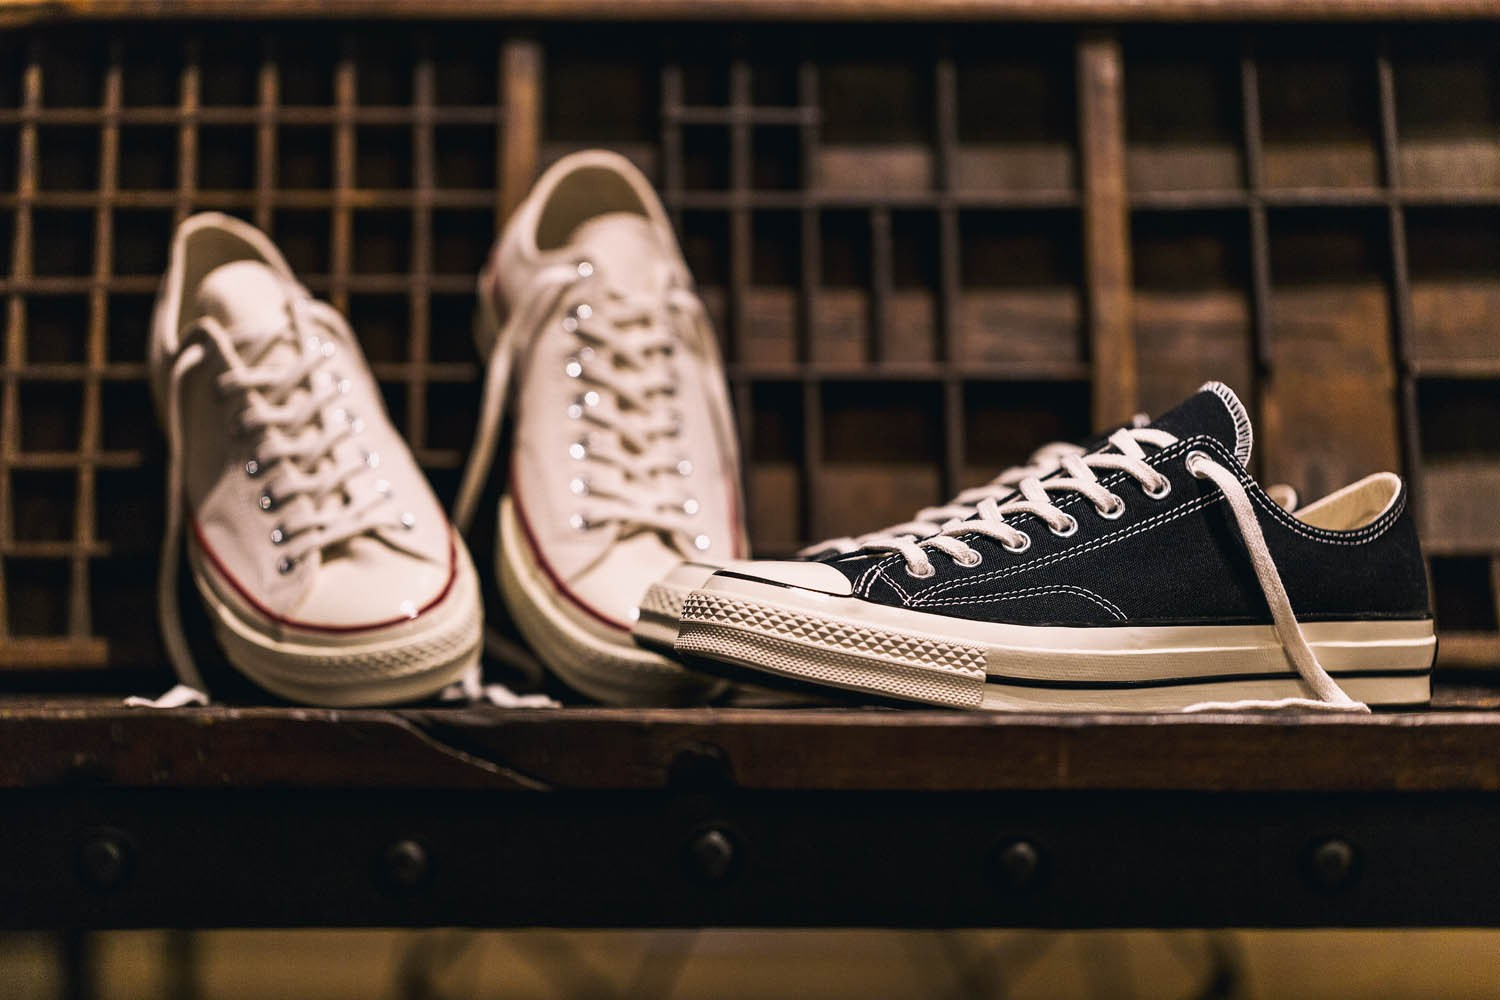 converse-shows-its-colors-with-its-latest-chuck-taylor-all-star-70s-release-20